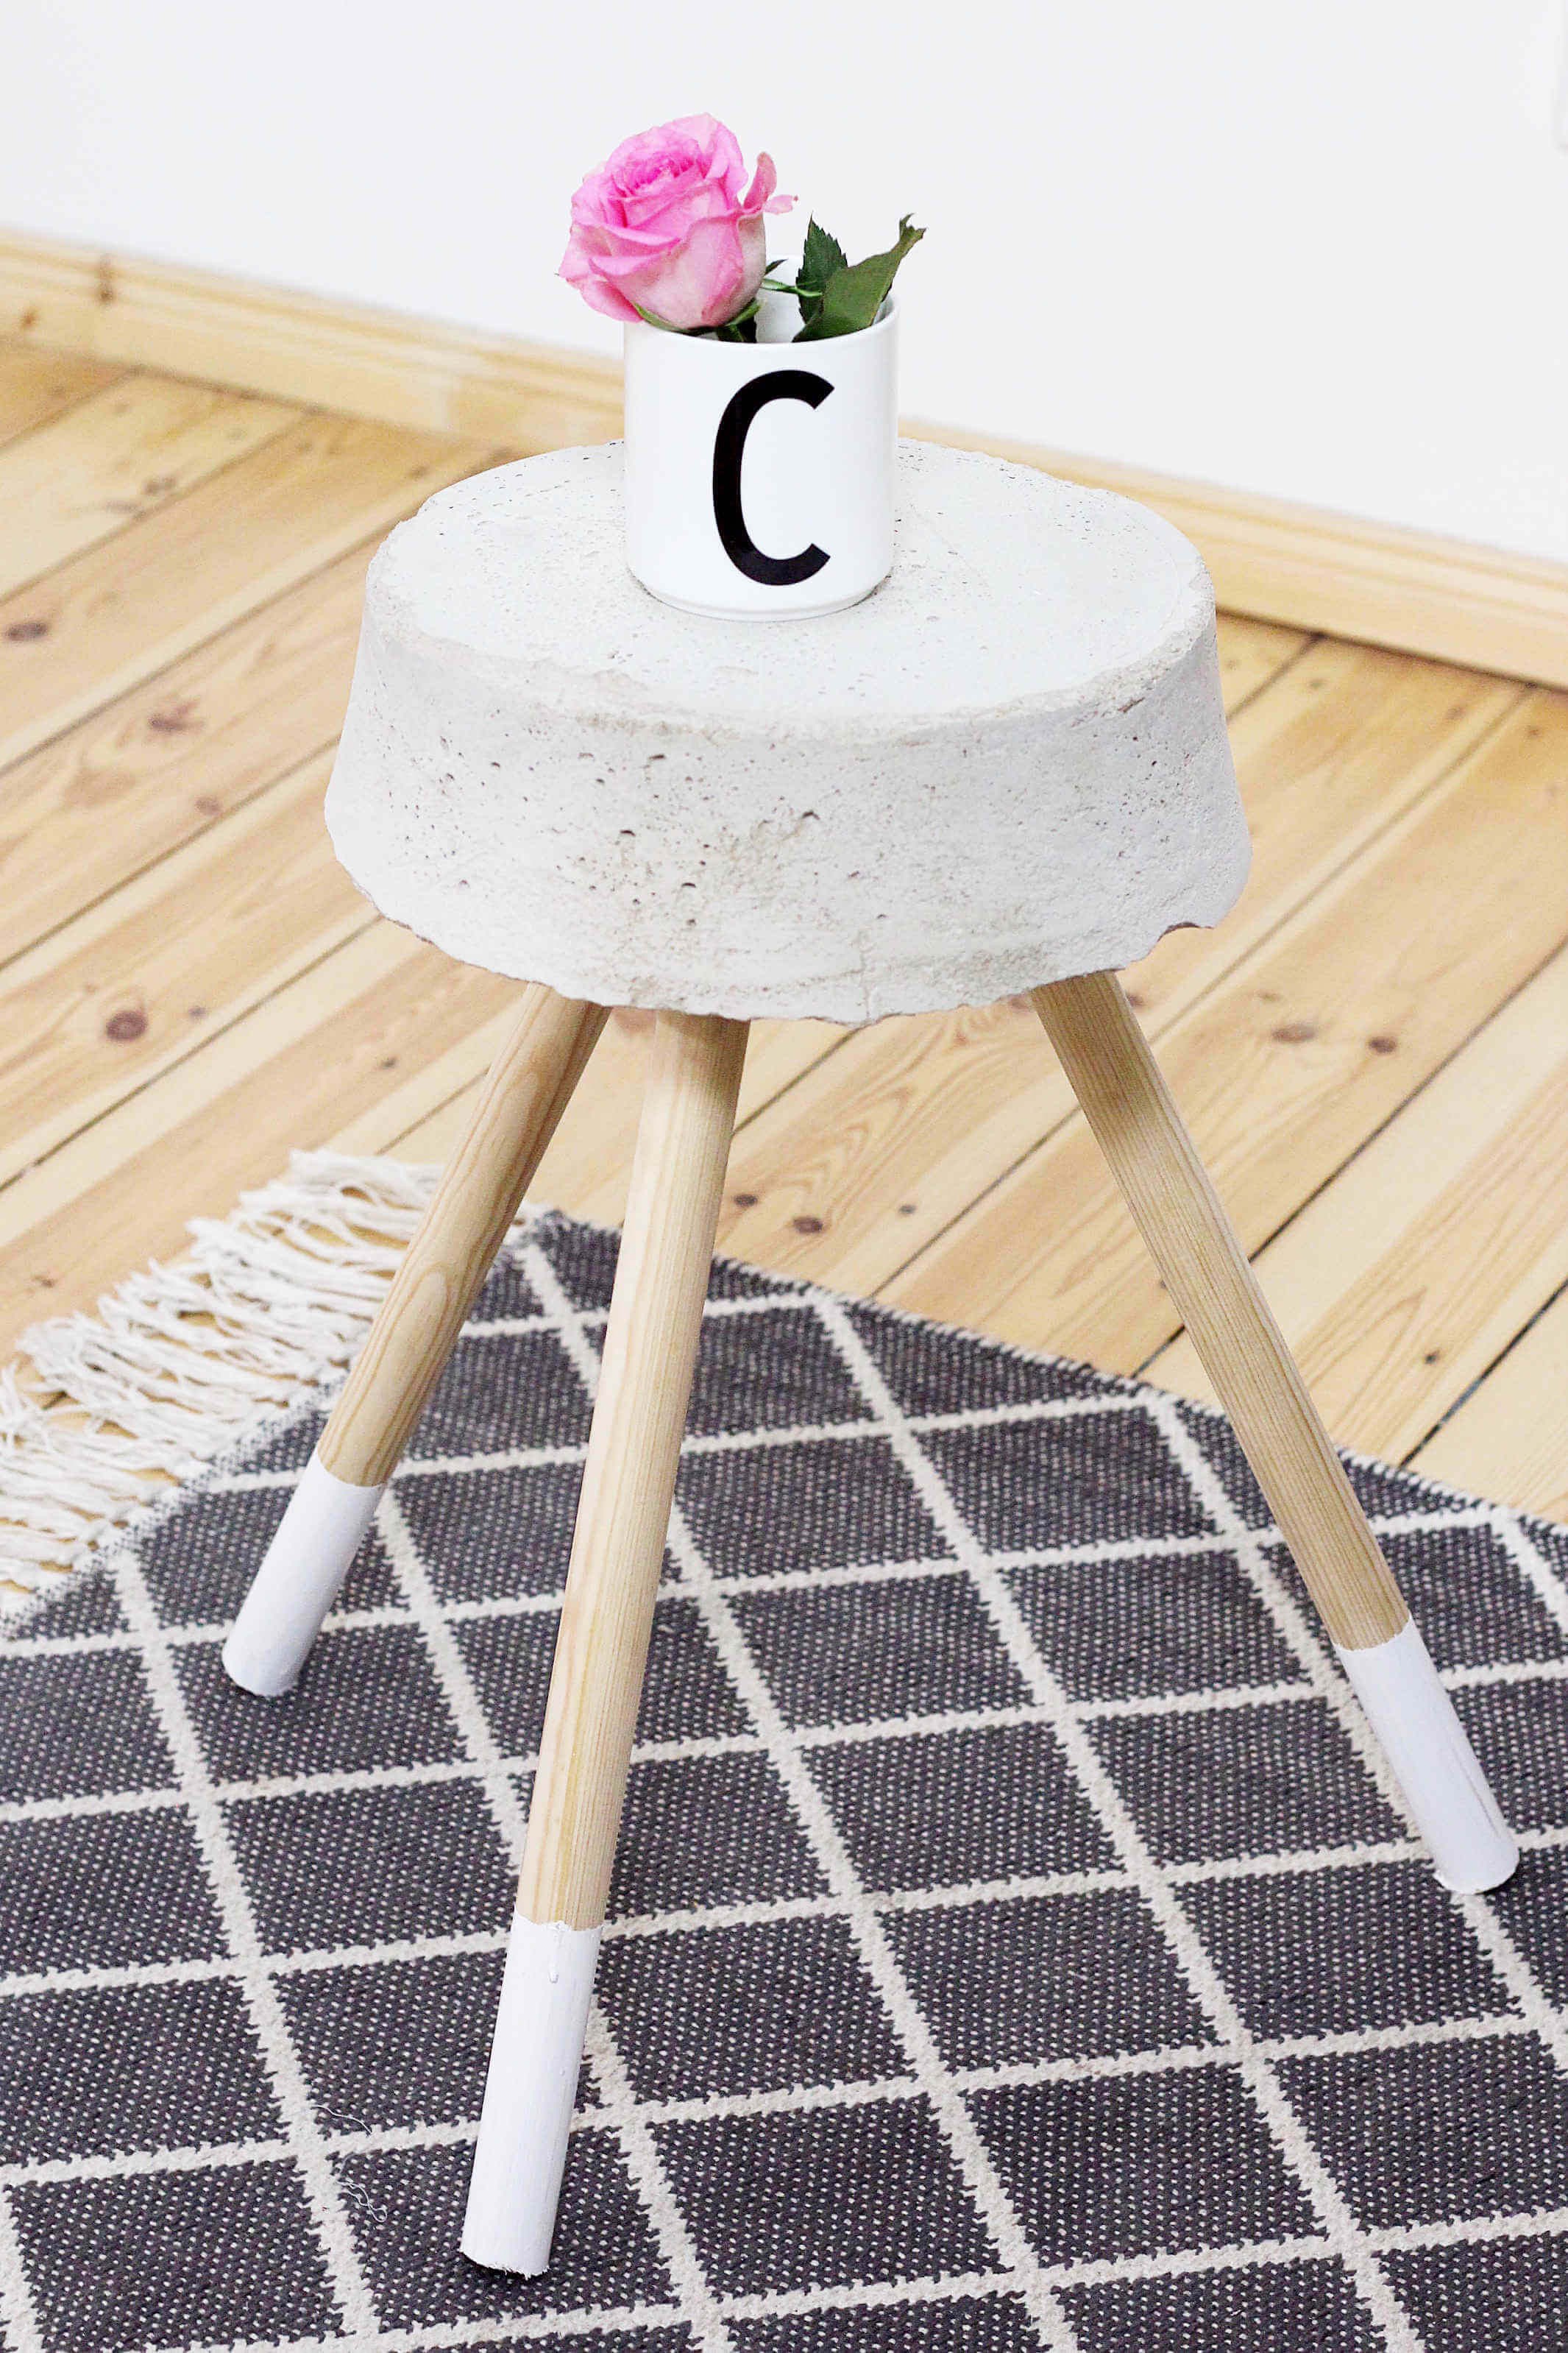 diy-beton-hocker-zement-moebel-diy-blog